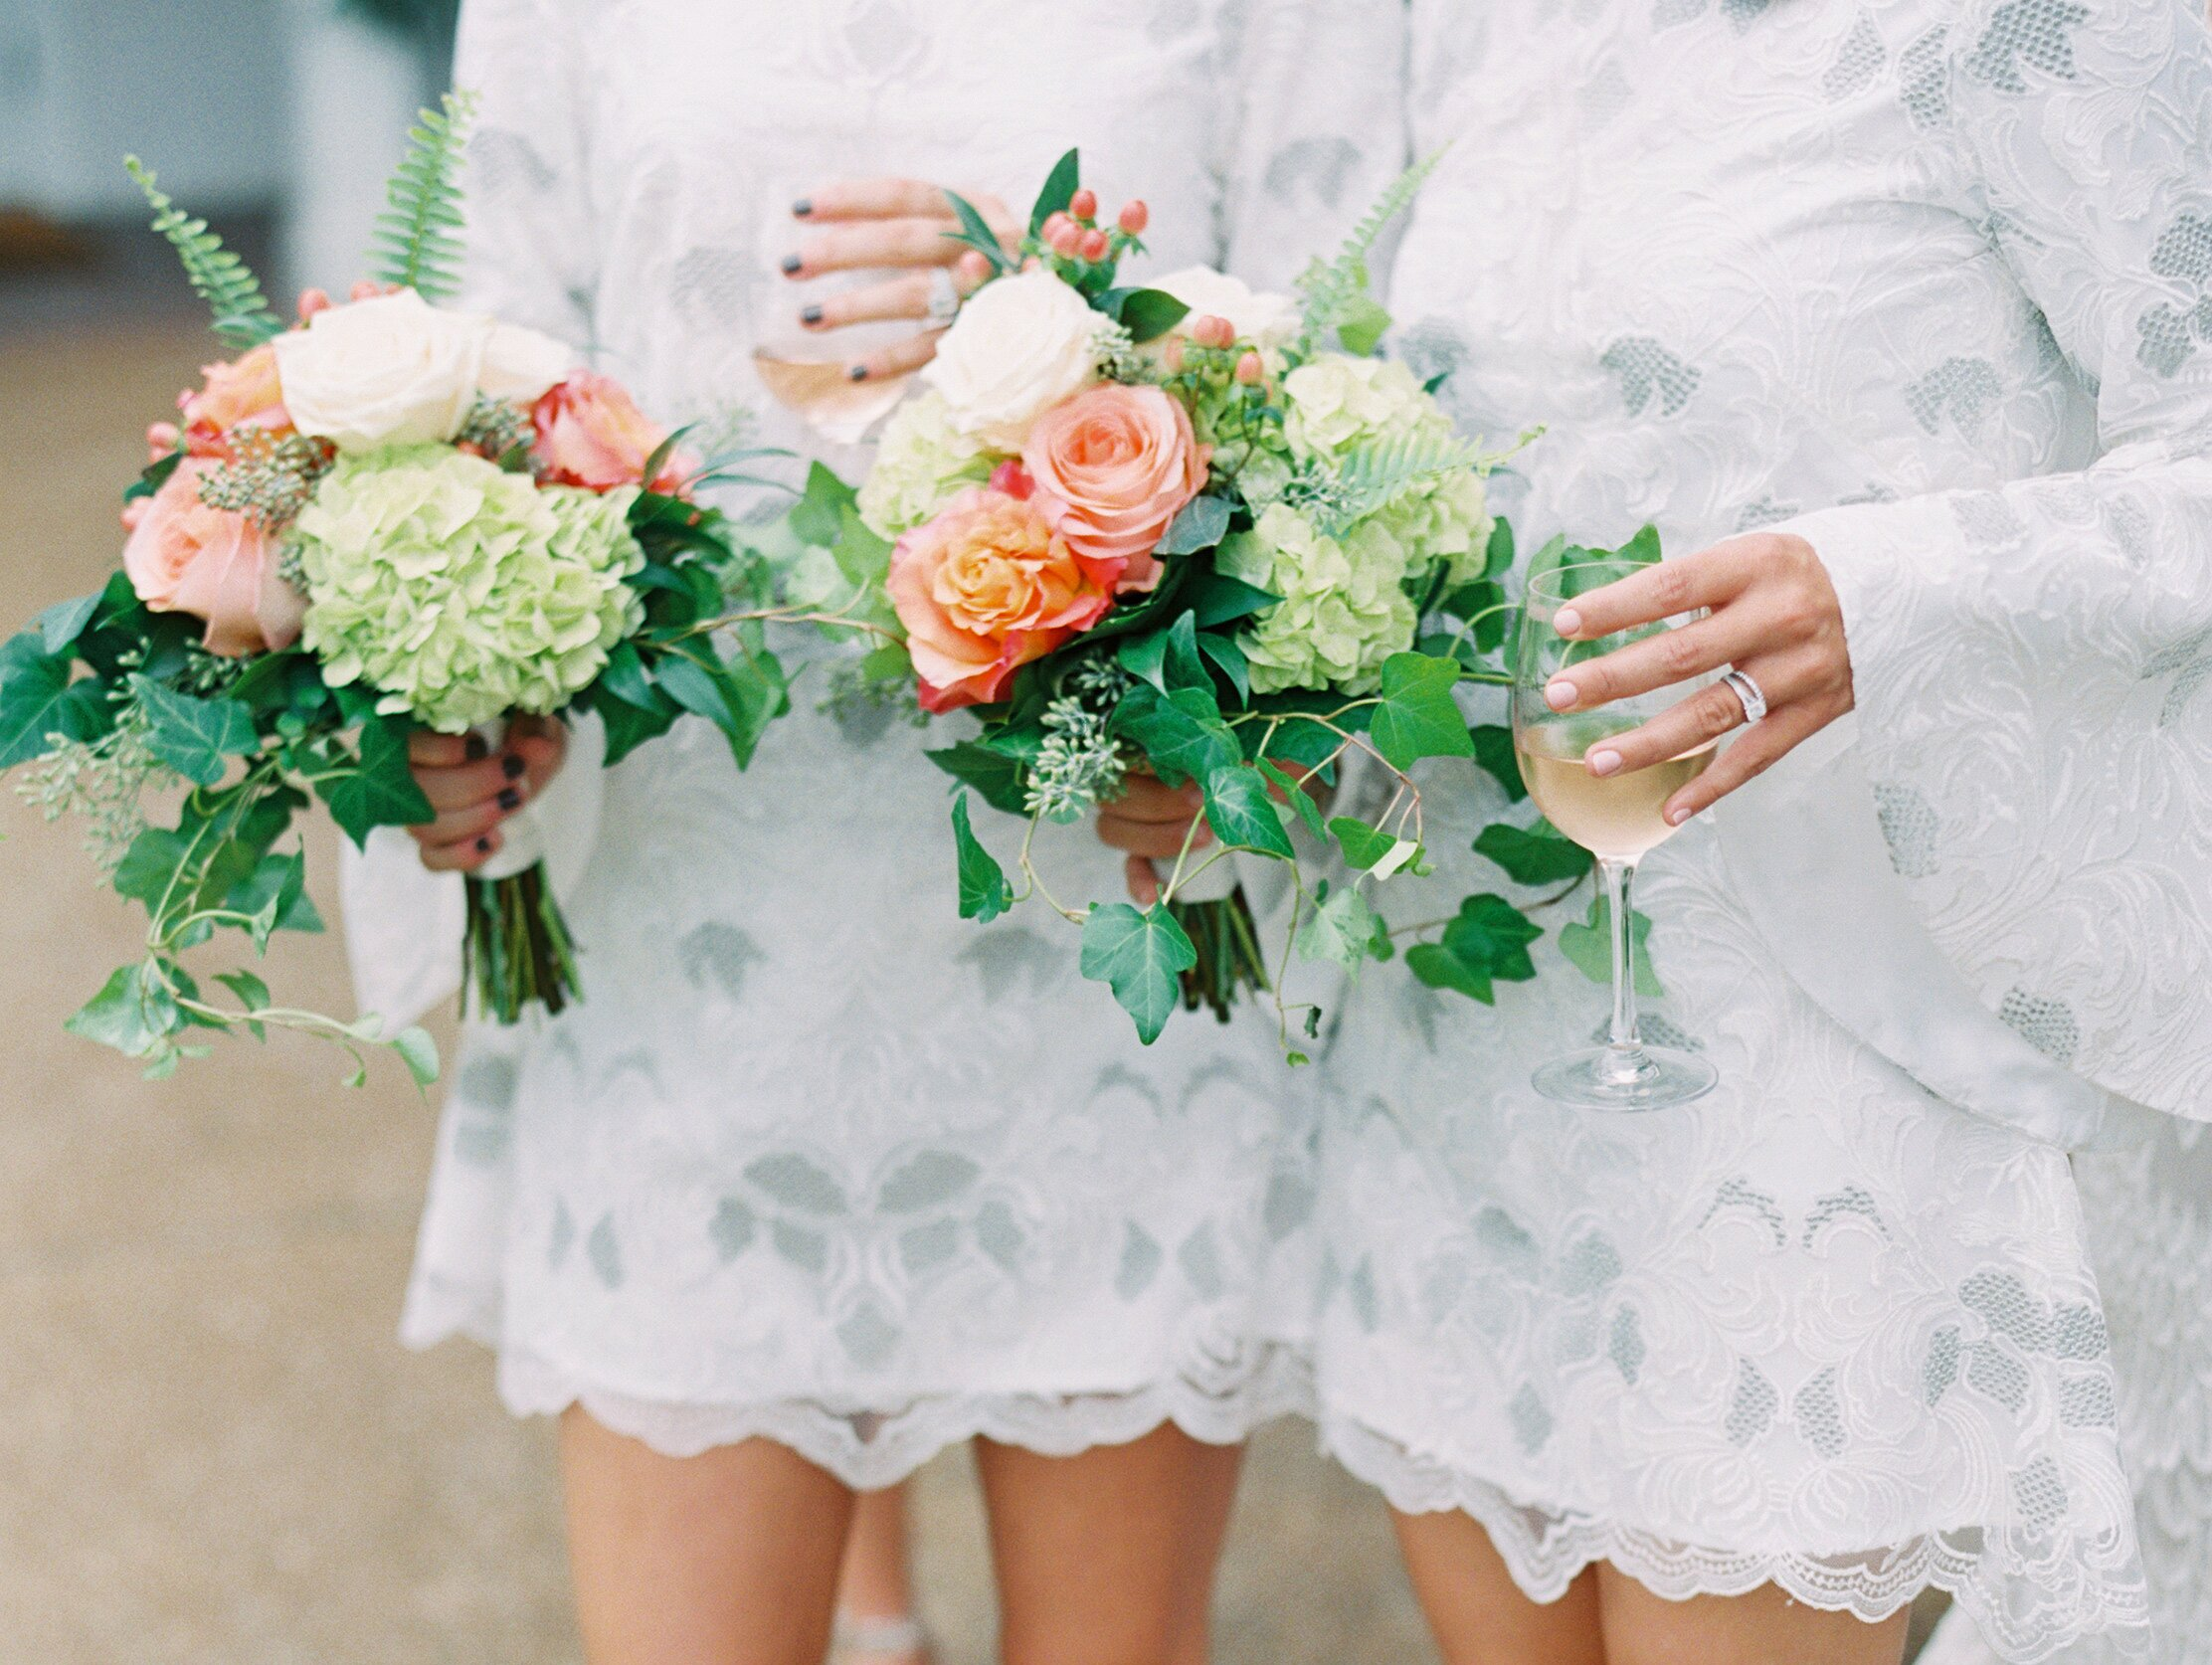 8 Wedding Planners Weigh In Can A Guest Wear White To The Wedding